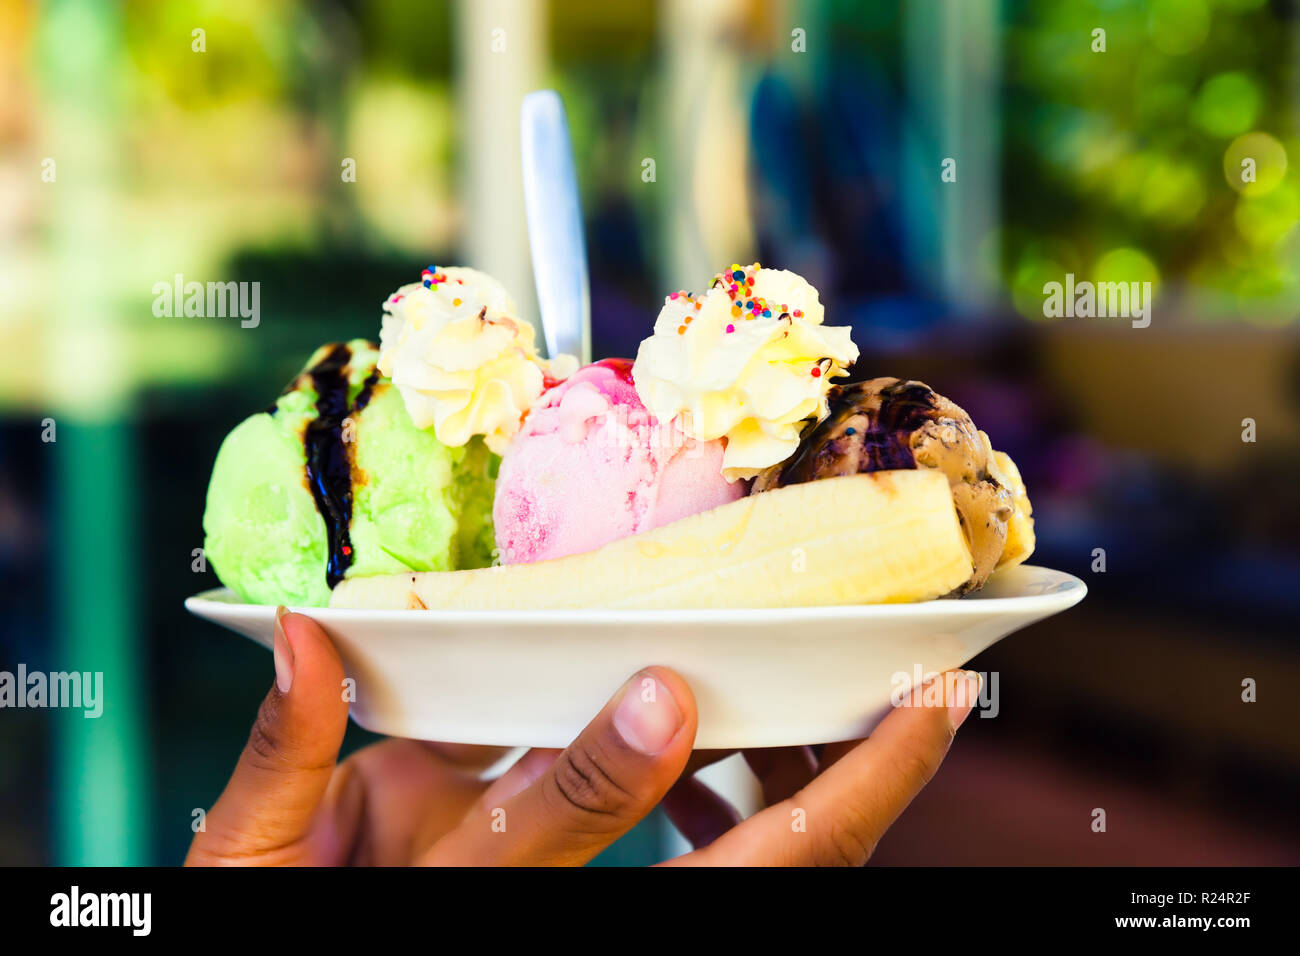 Fresh natural ice cream in woman hand on beautiful blurred background - Stock Image